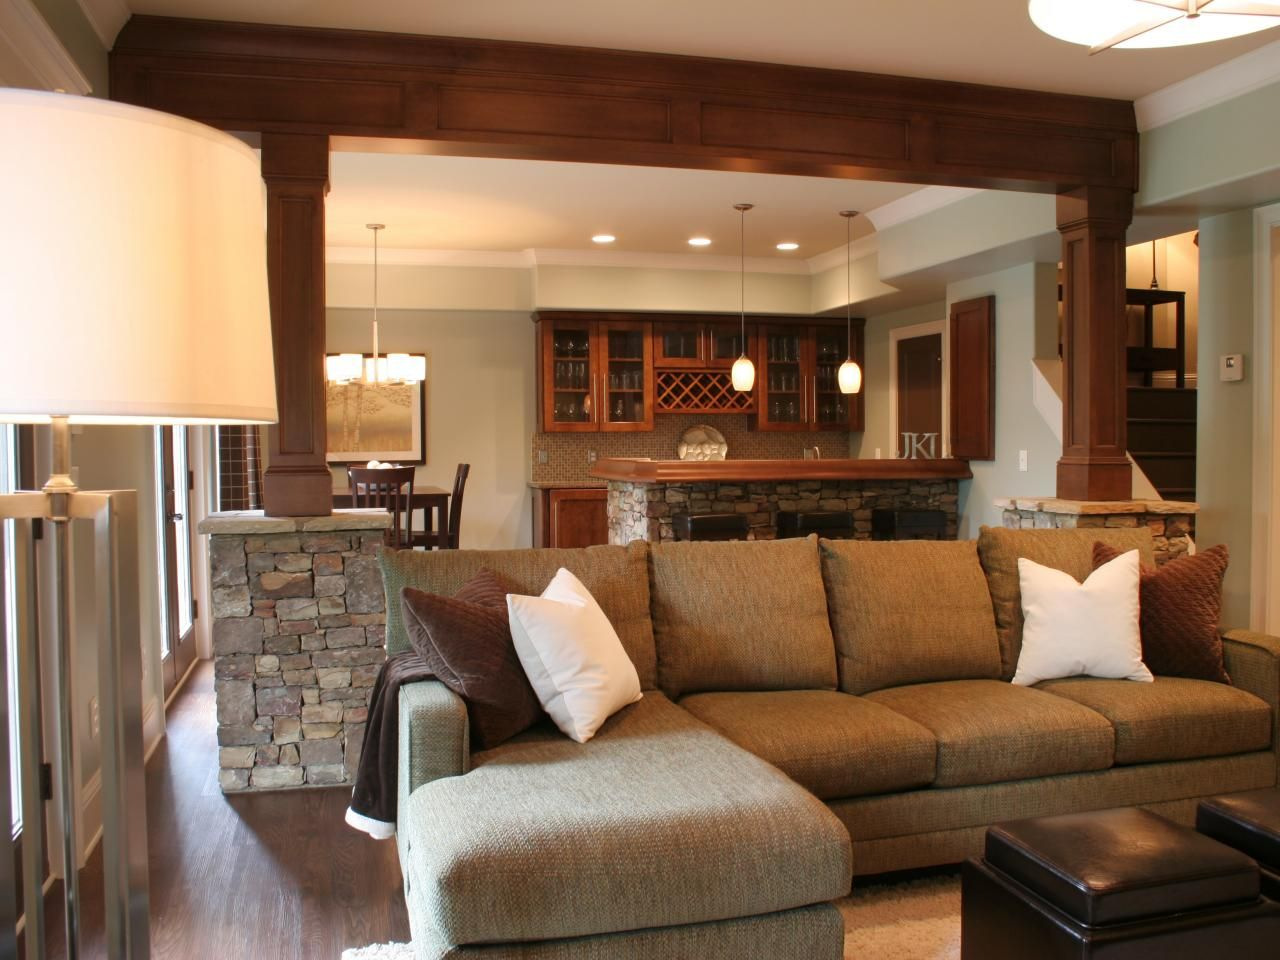 Basement design ideas basements hgtv and beams Basement room decorating ideas